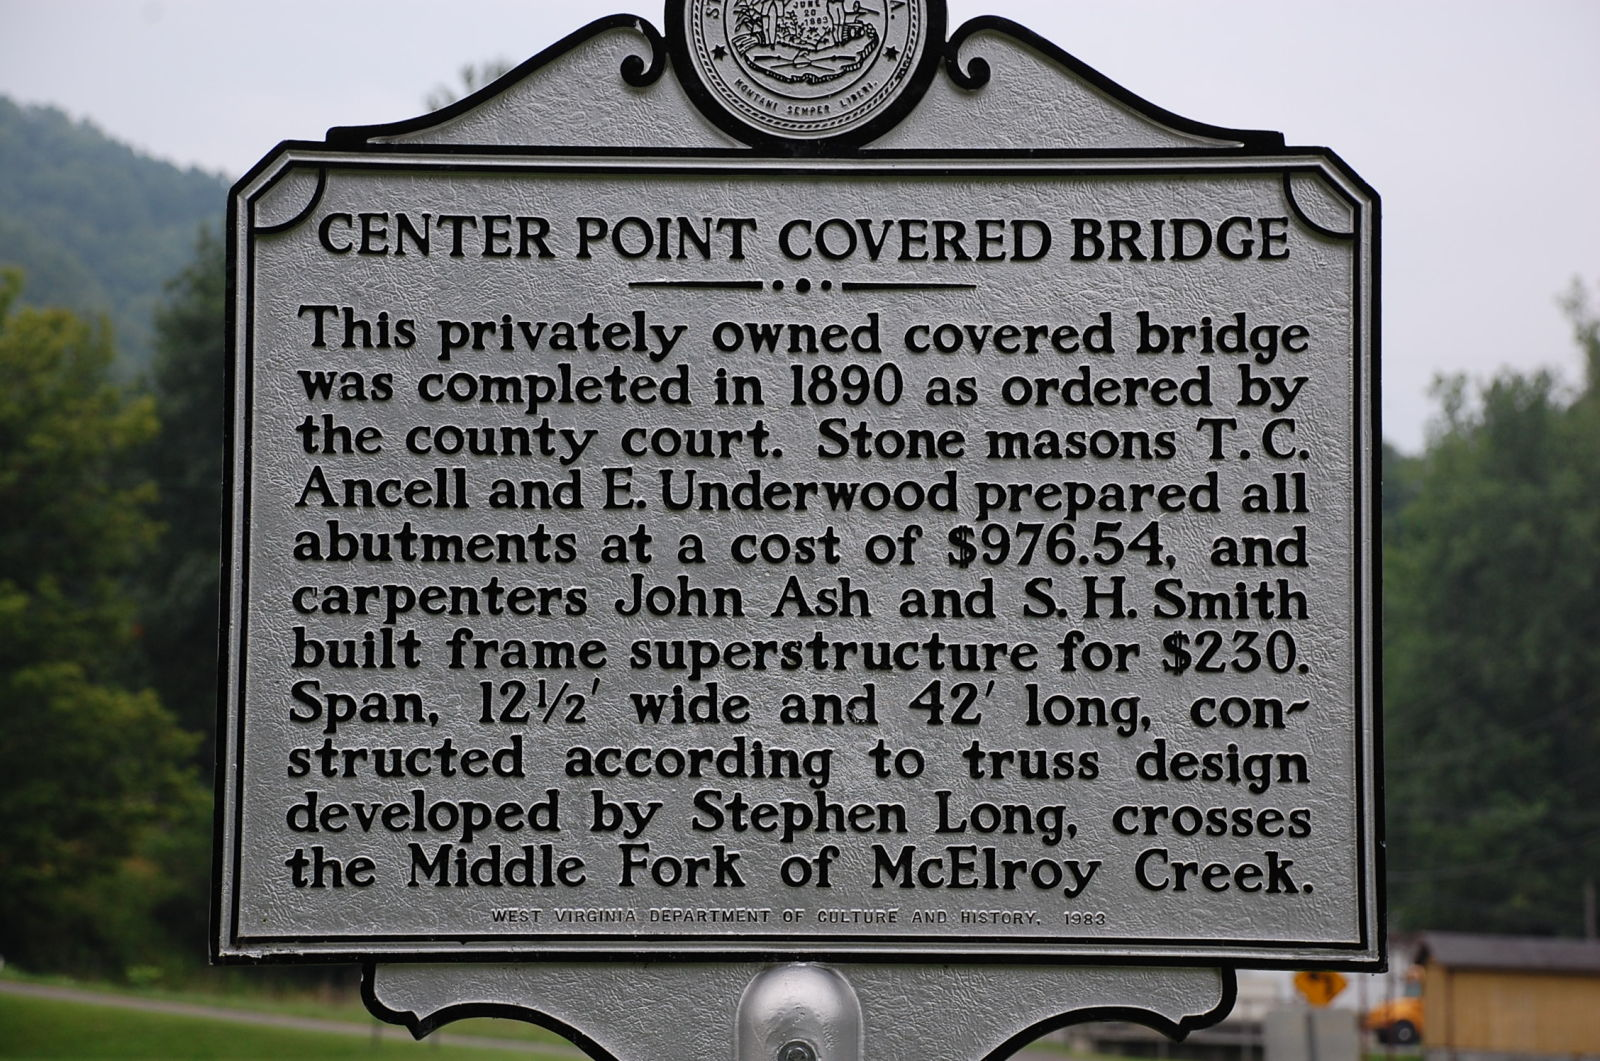 Center Point Covered Bridge Historical Marker